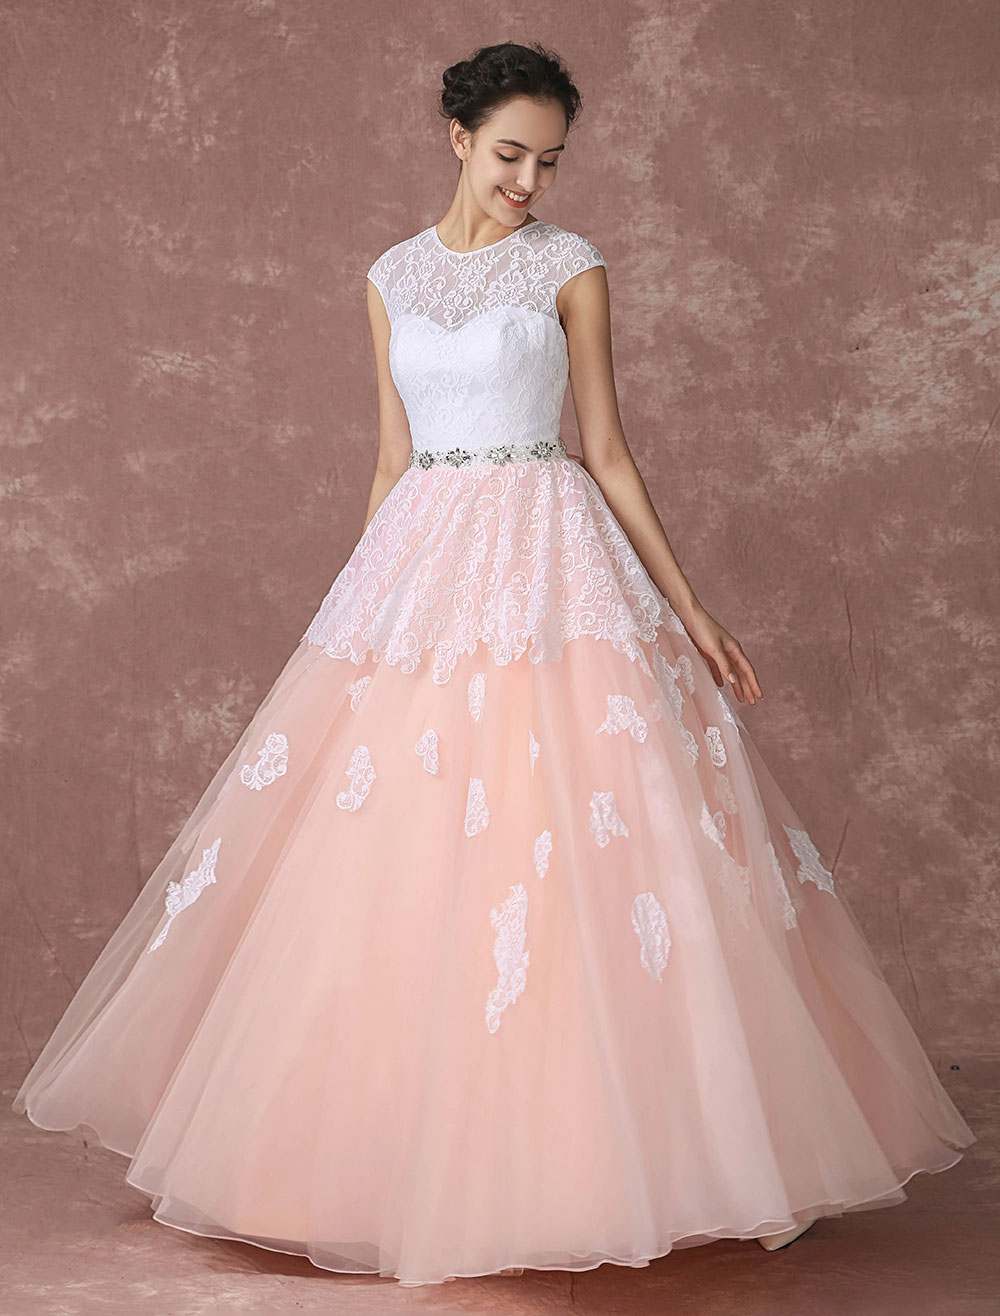 Brush Wedding Dress Lace Pink Bridal Gown Backless Floor-length A-line Tulle Bridal Dress With Rhinestone Sash And Ribbon Bow Milanoo (Pink Wedding Dress) photo